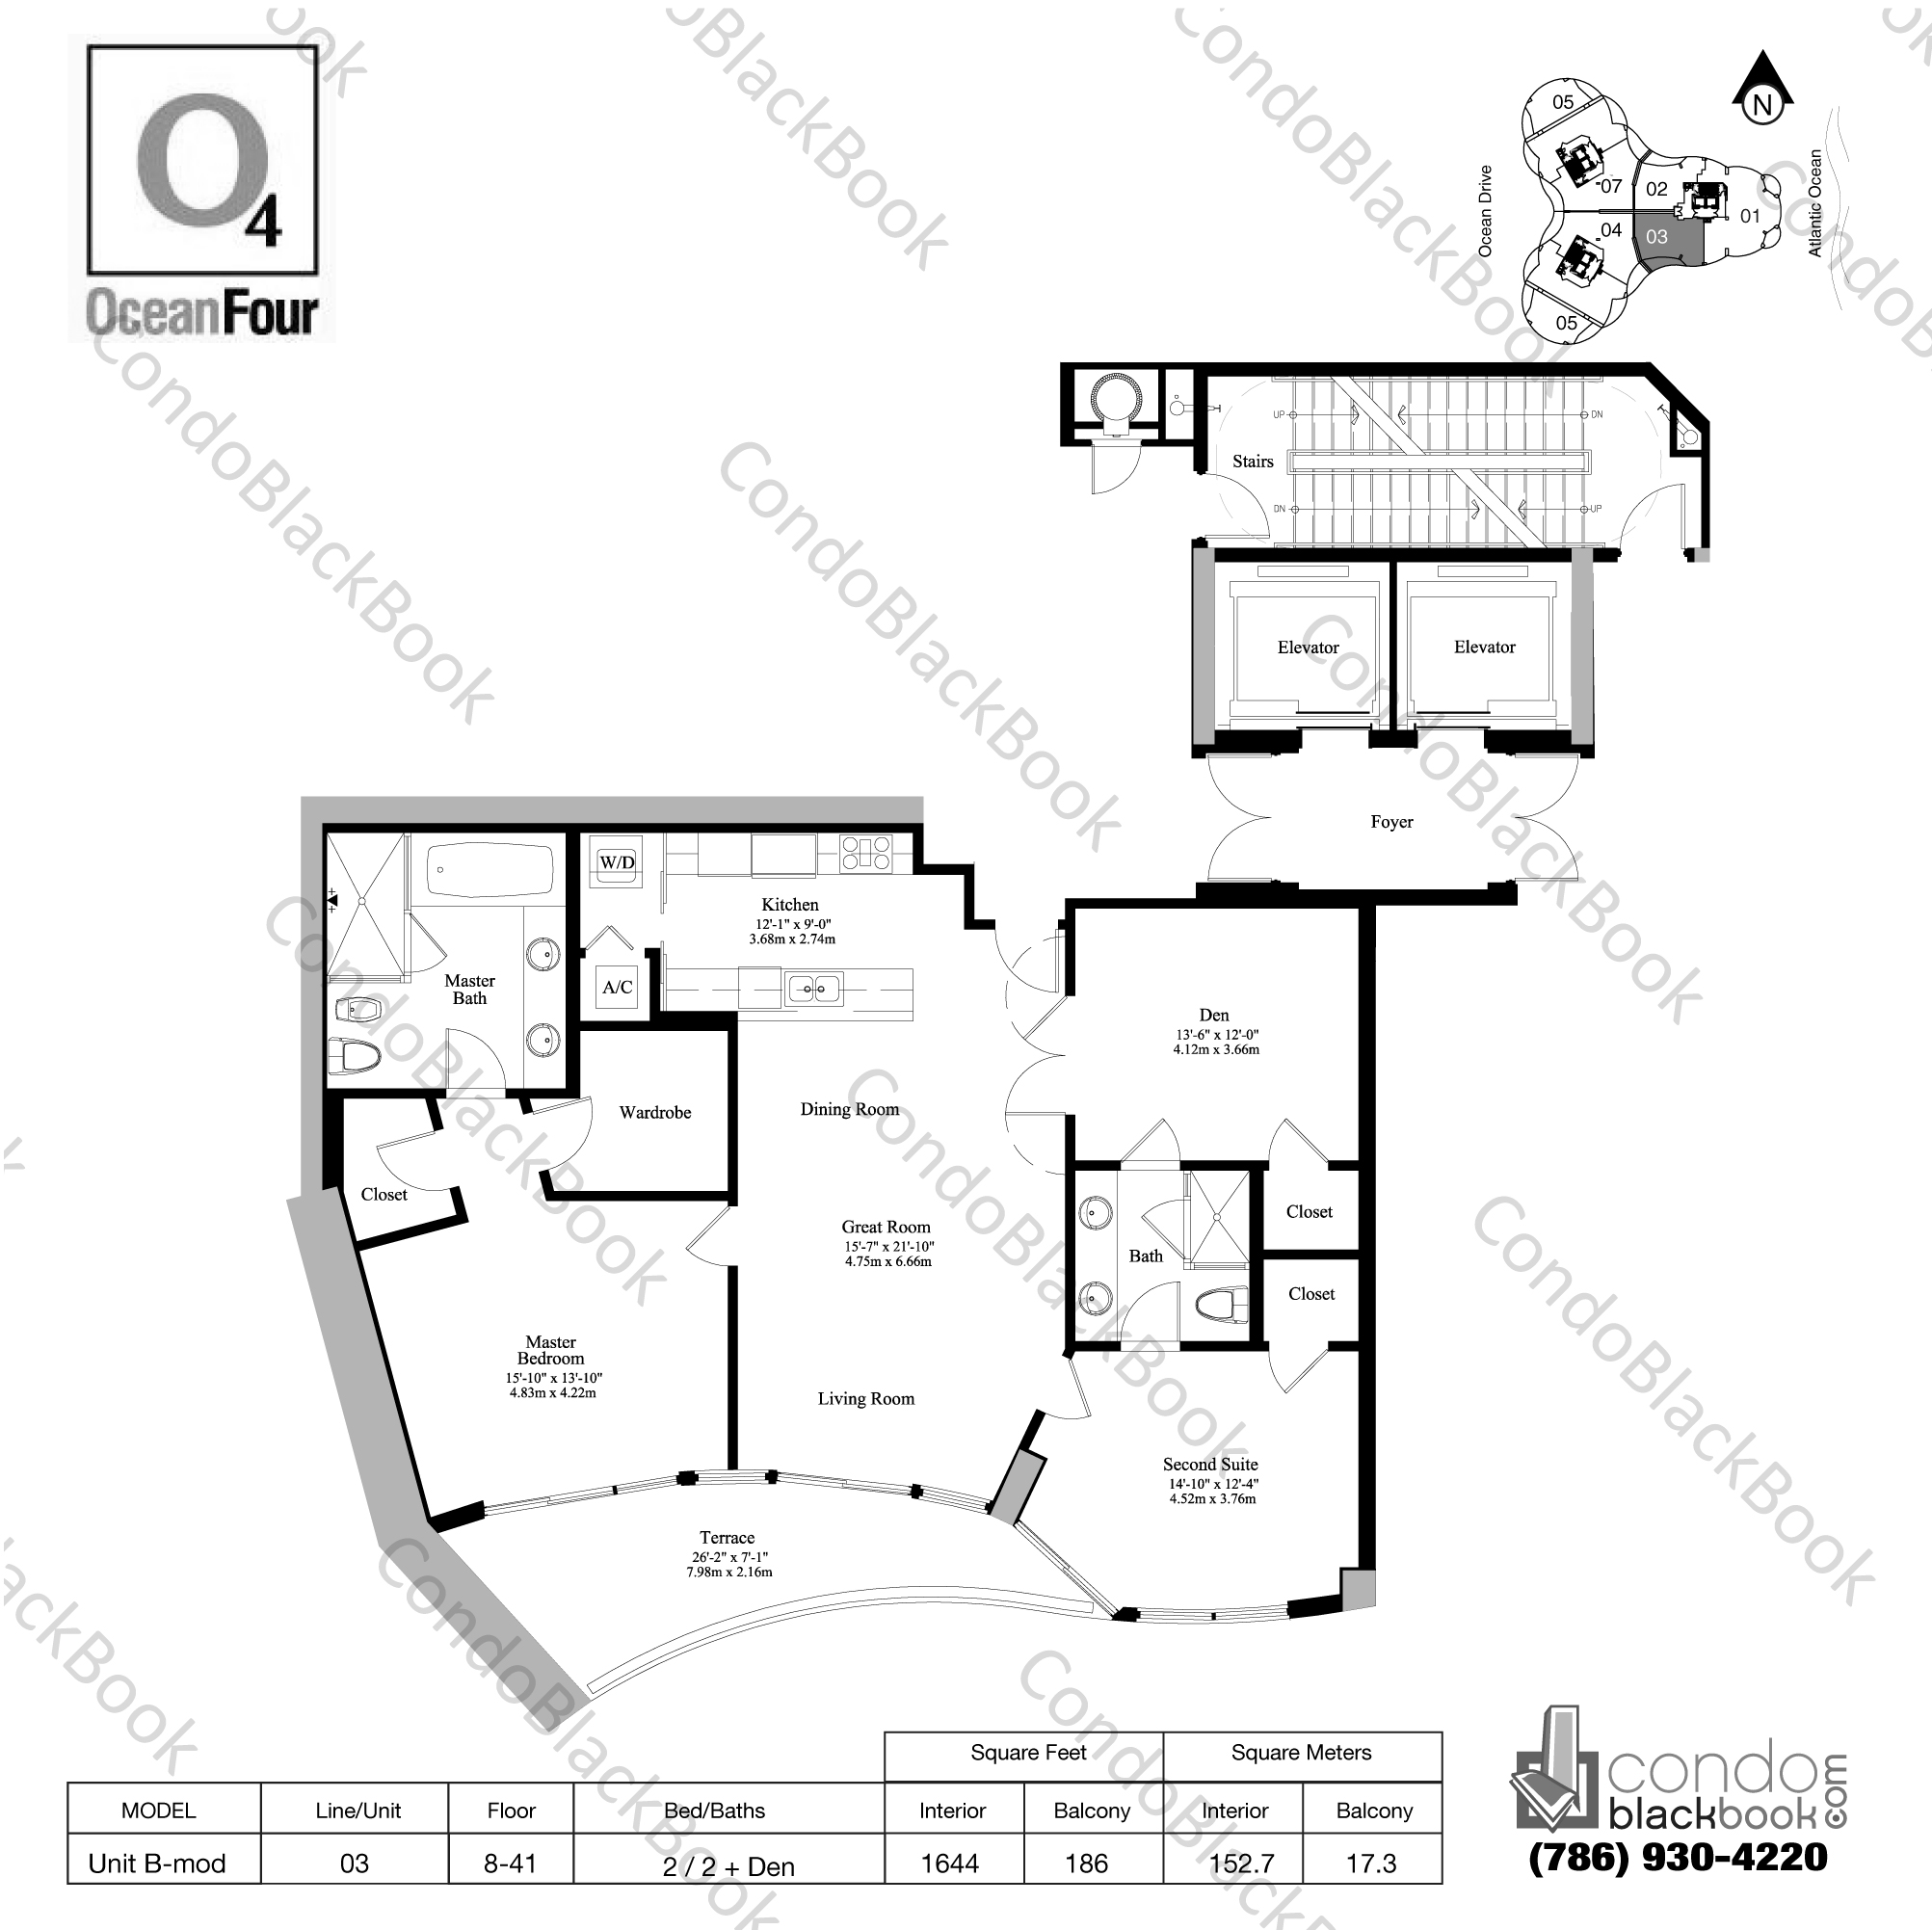 Floor plan for Ocean Four Sunny Isles Beach, model Unit B-mod, line 03, 2 / 2 + Den bedrooms, 1644 sq ft